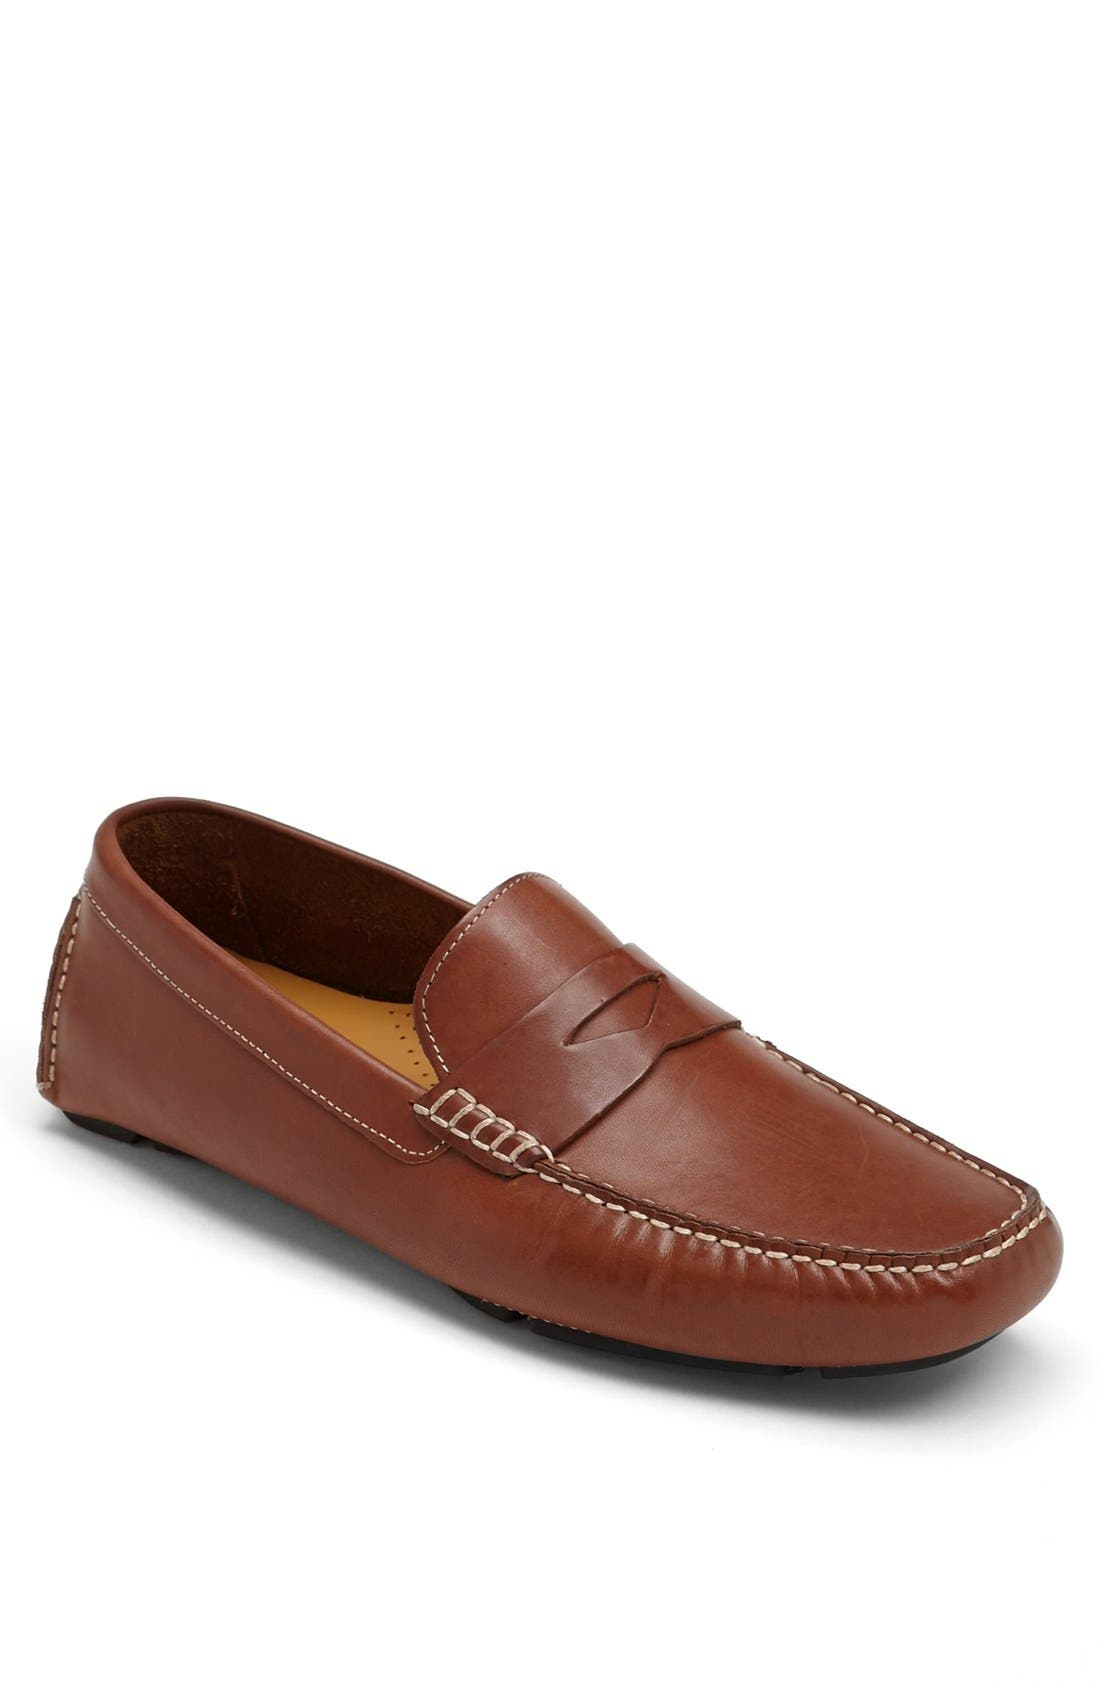 Cole Haan 'Howland' Penny Loafer ...